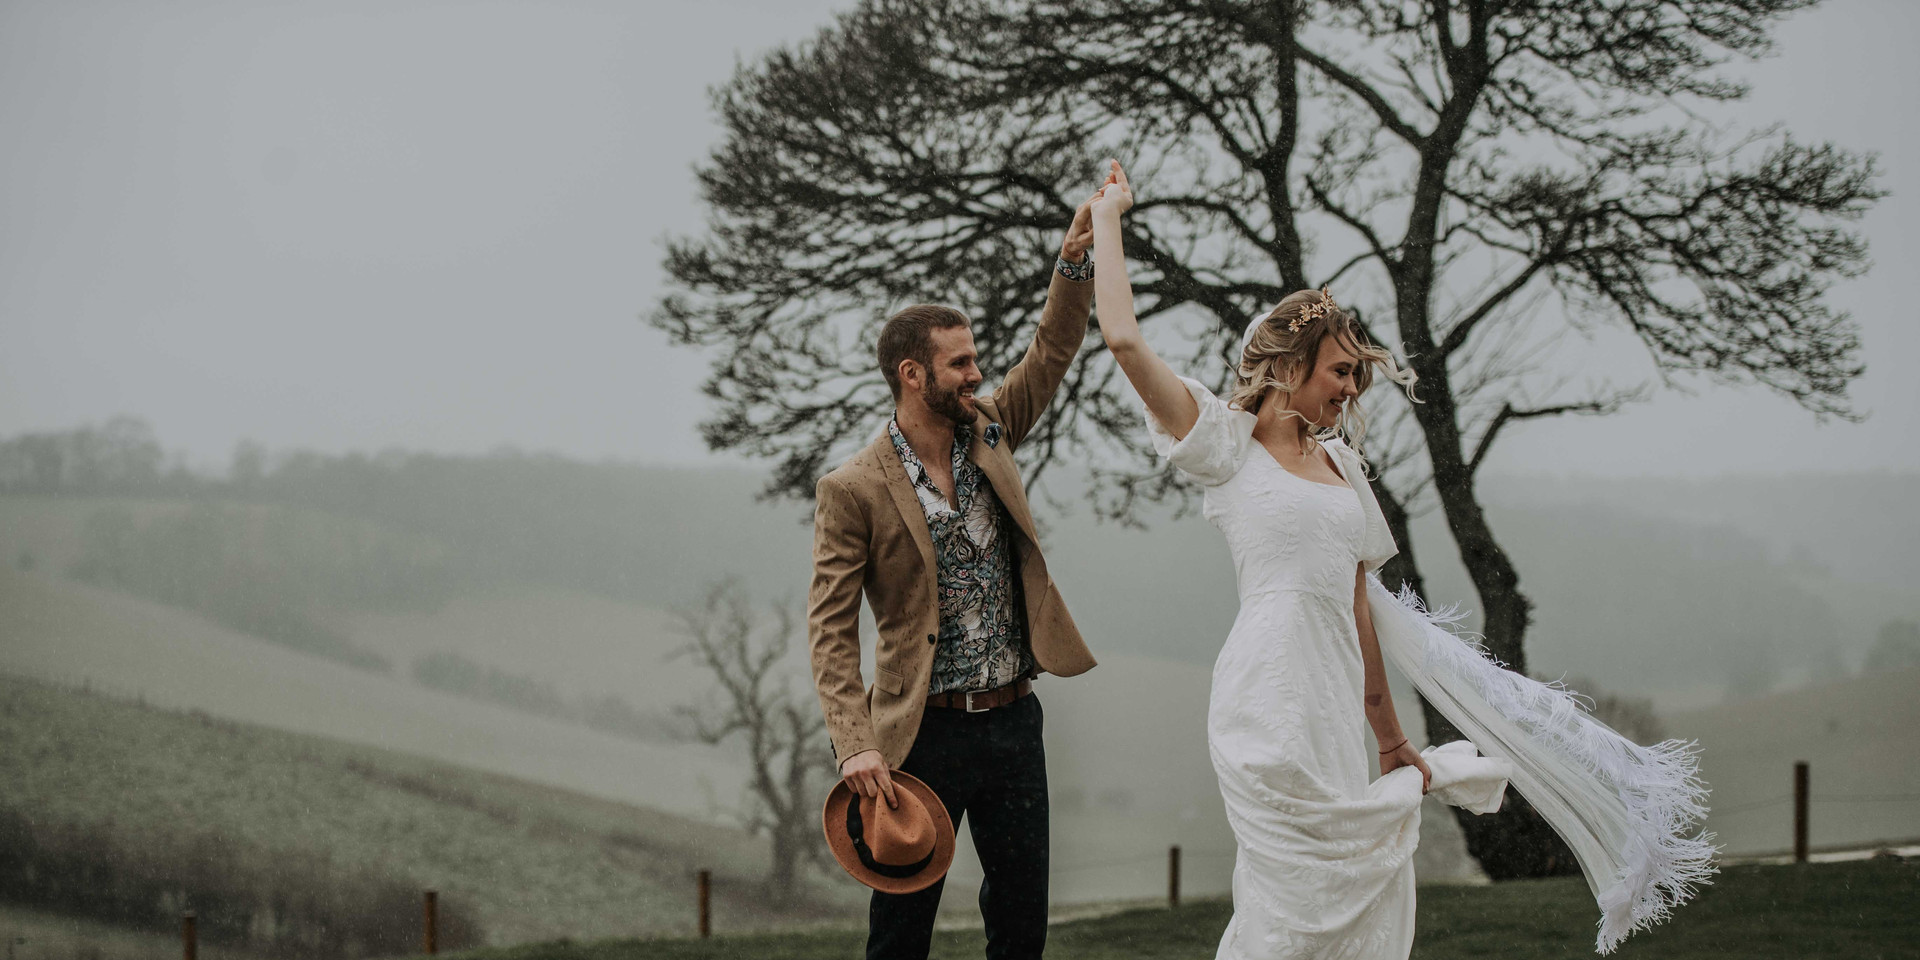 Bride and Groom dancing in the rain at Botley Hill Barn in Surrey